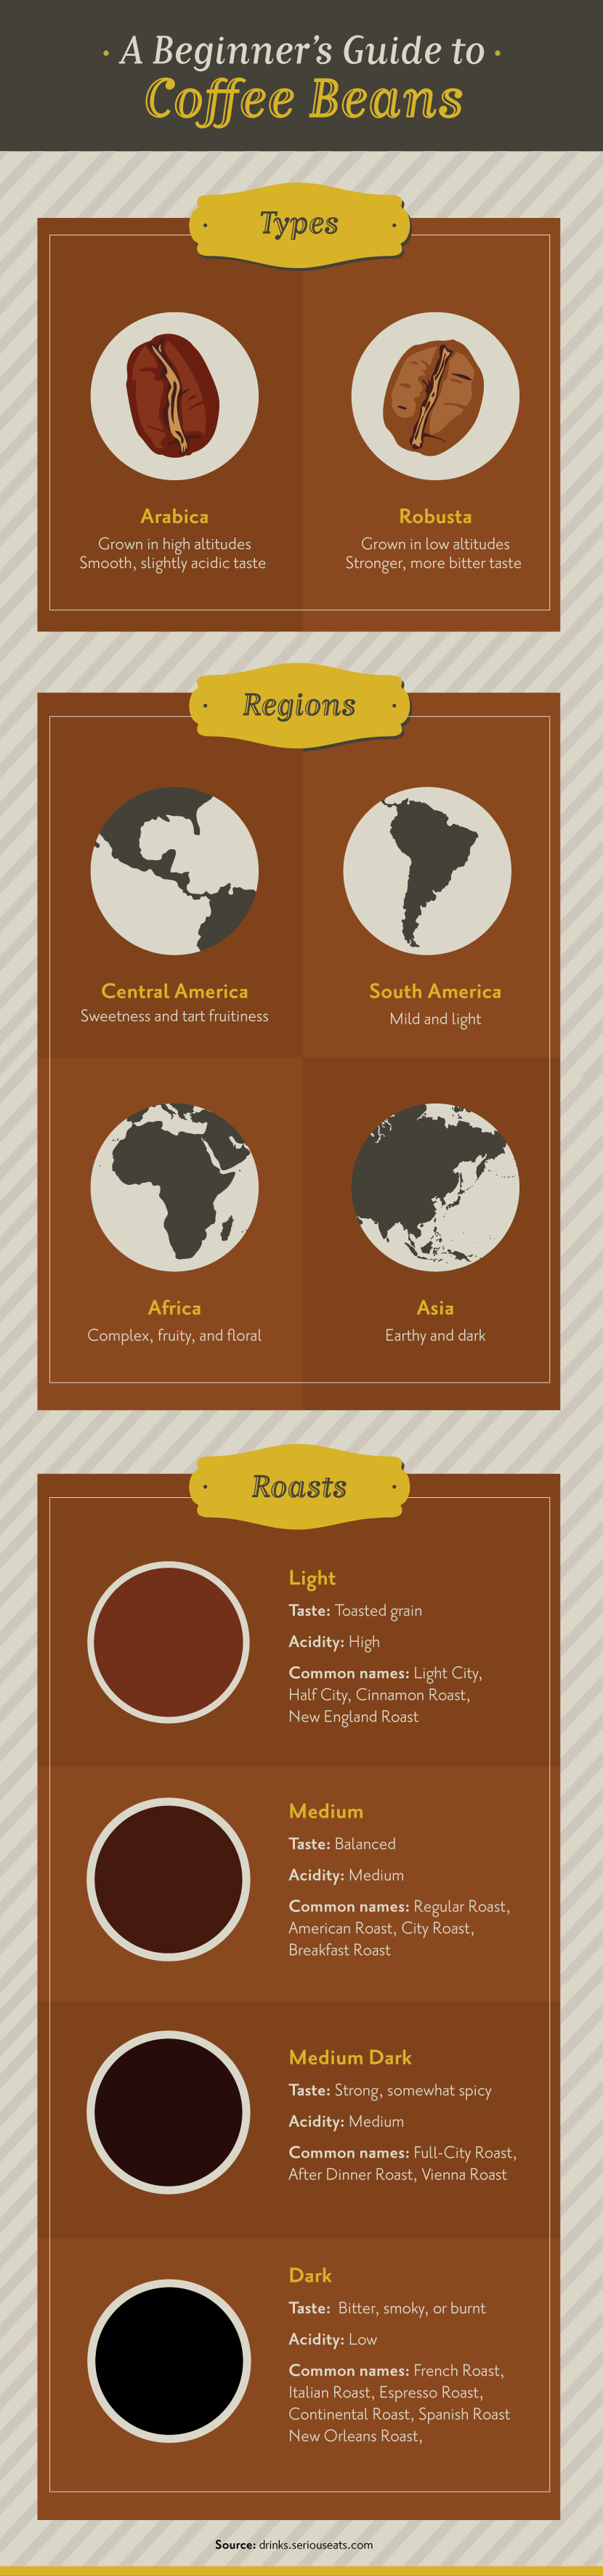 Beginner's Guide to Coffee Beans - Four Ways to Brew a Perfect Cup of Coffee